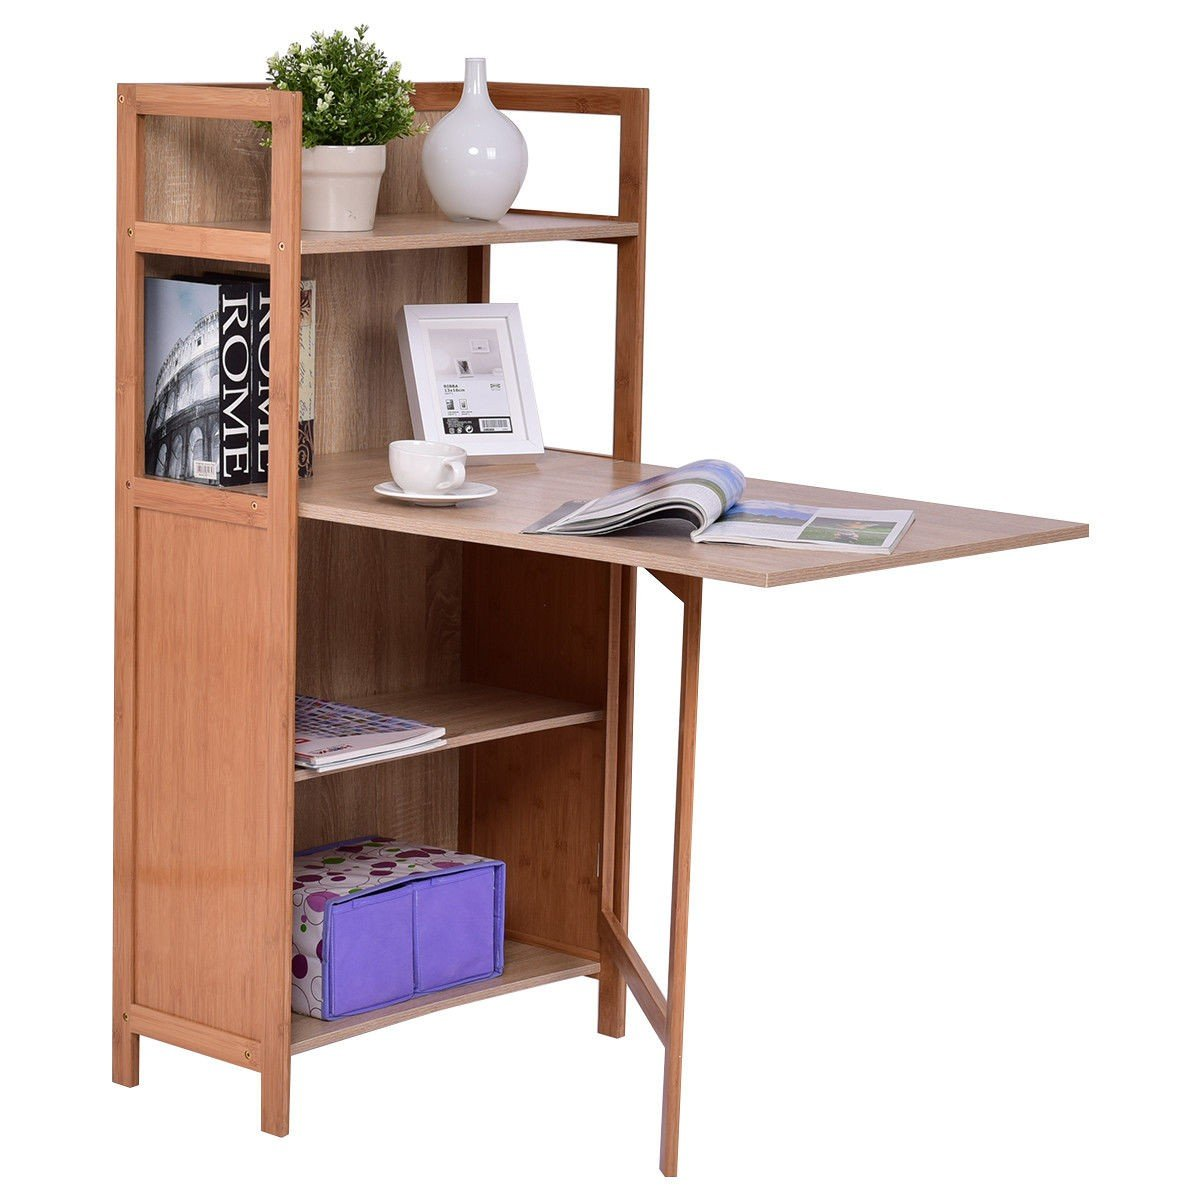 MD Group Desk Cabinet Convertible Wood Folding 2-in-1 Contemporary Style with Bookshelf